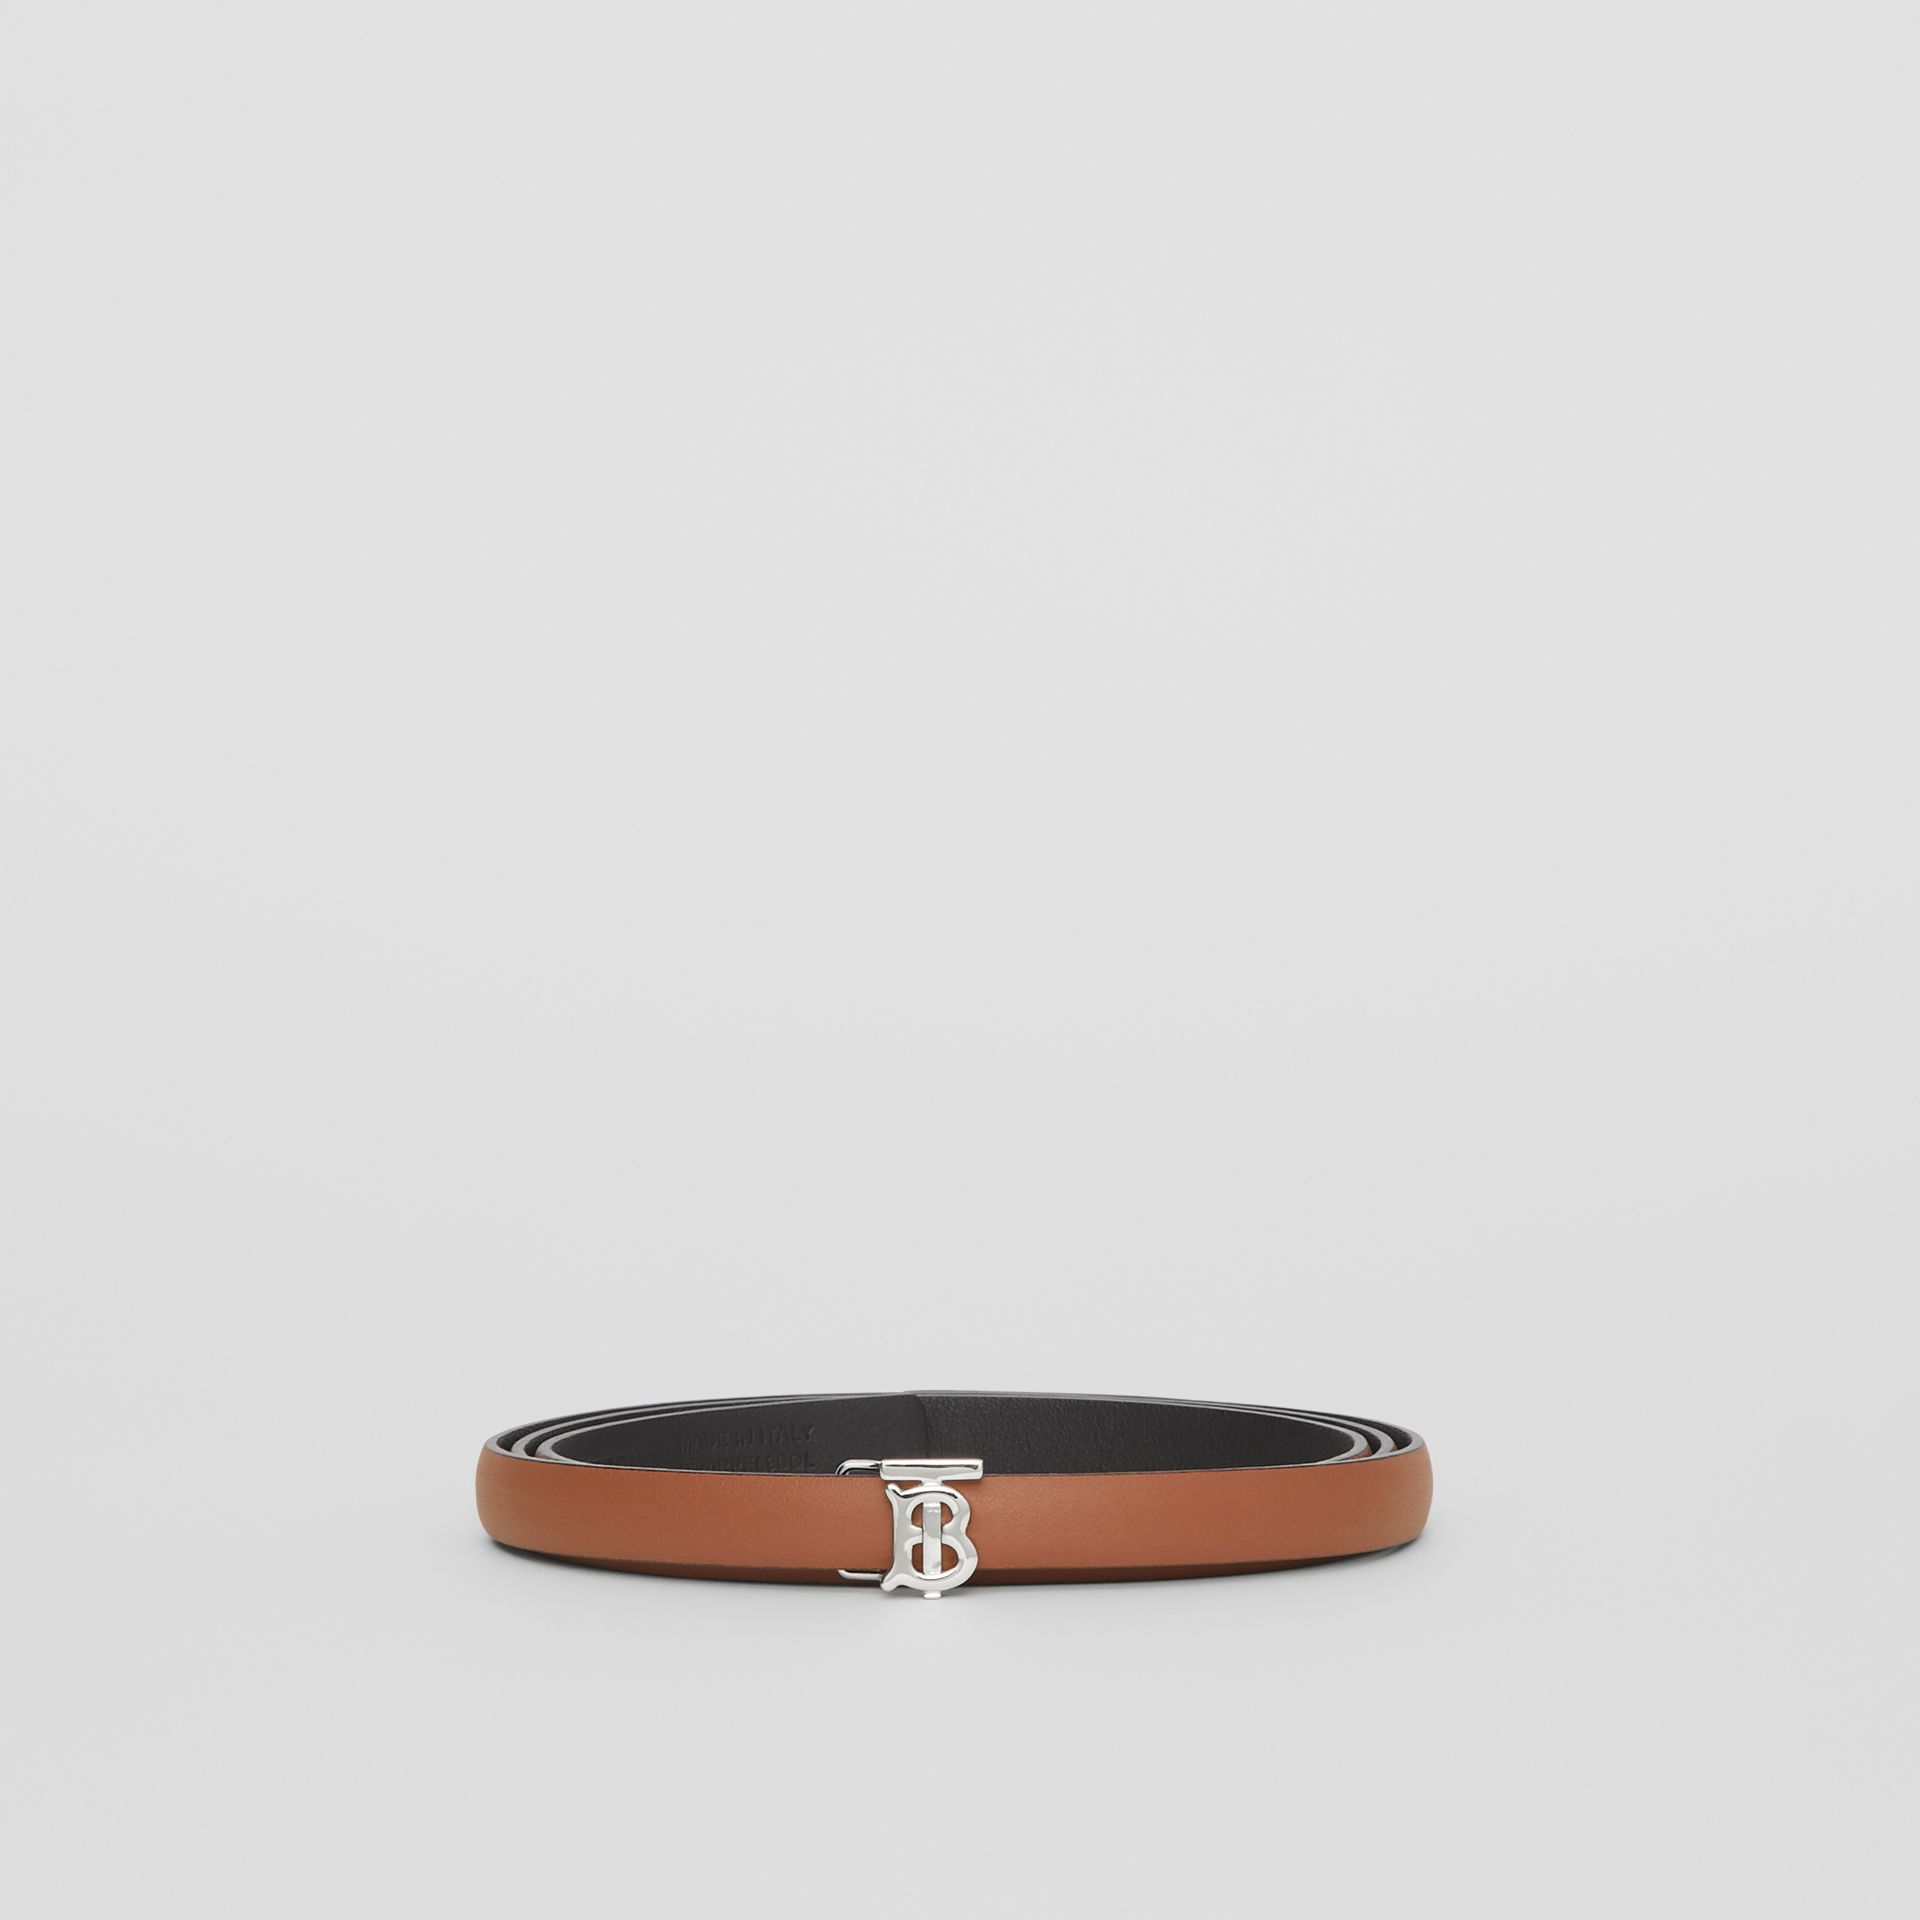 Reversible Monogram Motif Leather Wrap Belt in Malt Brown/black - Women | Burberry United States - gallery image 3